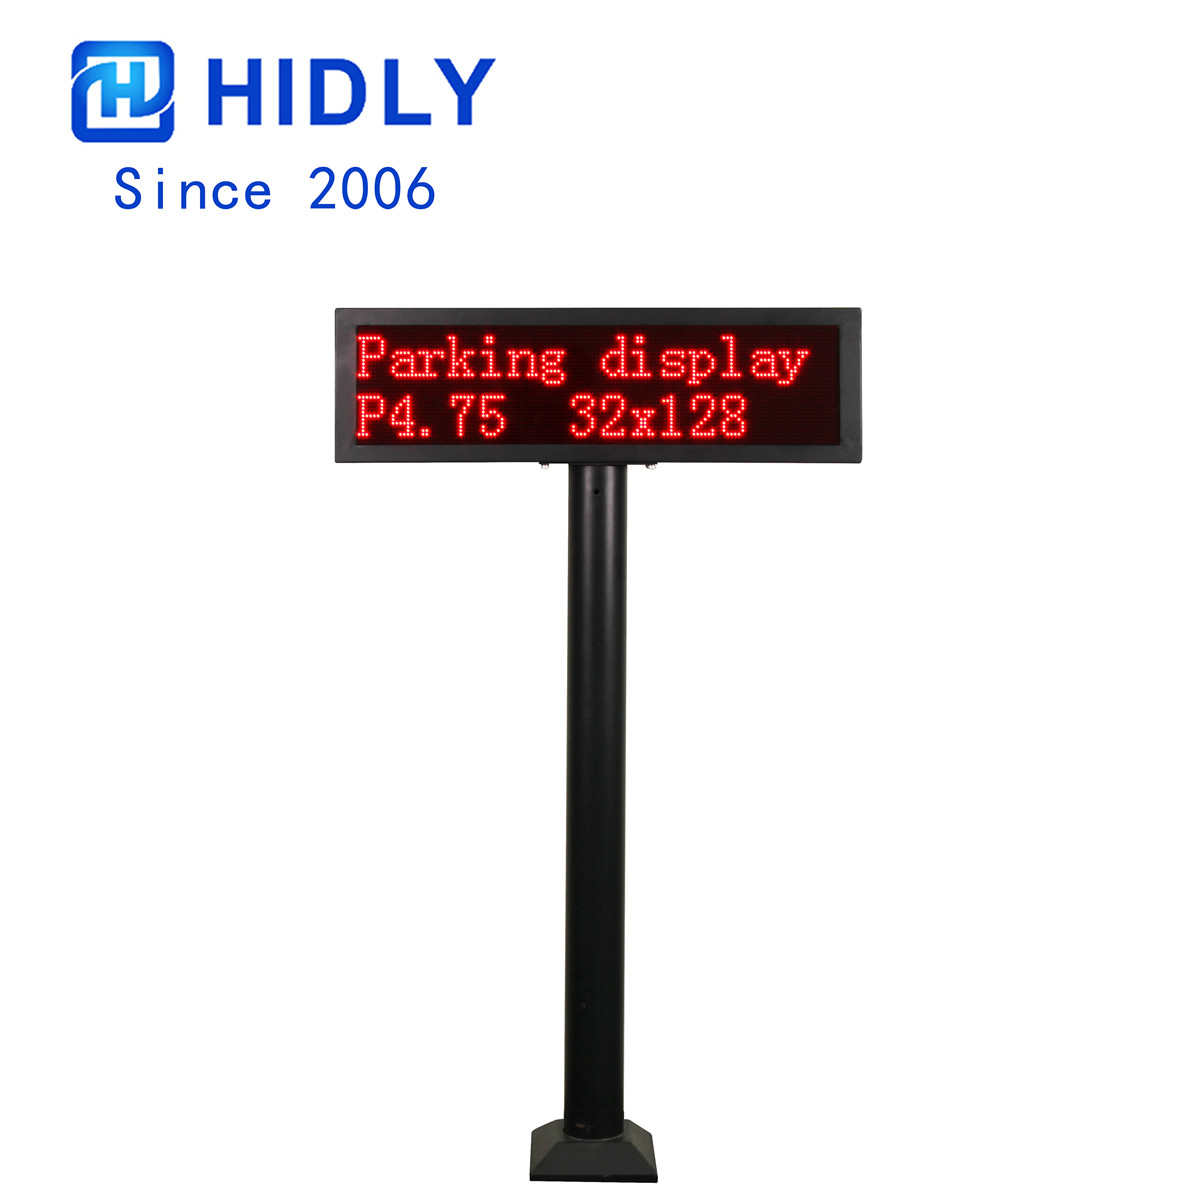 P4.74 Red LED Parking Garage Signs